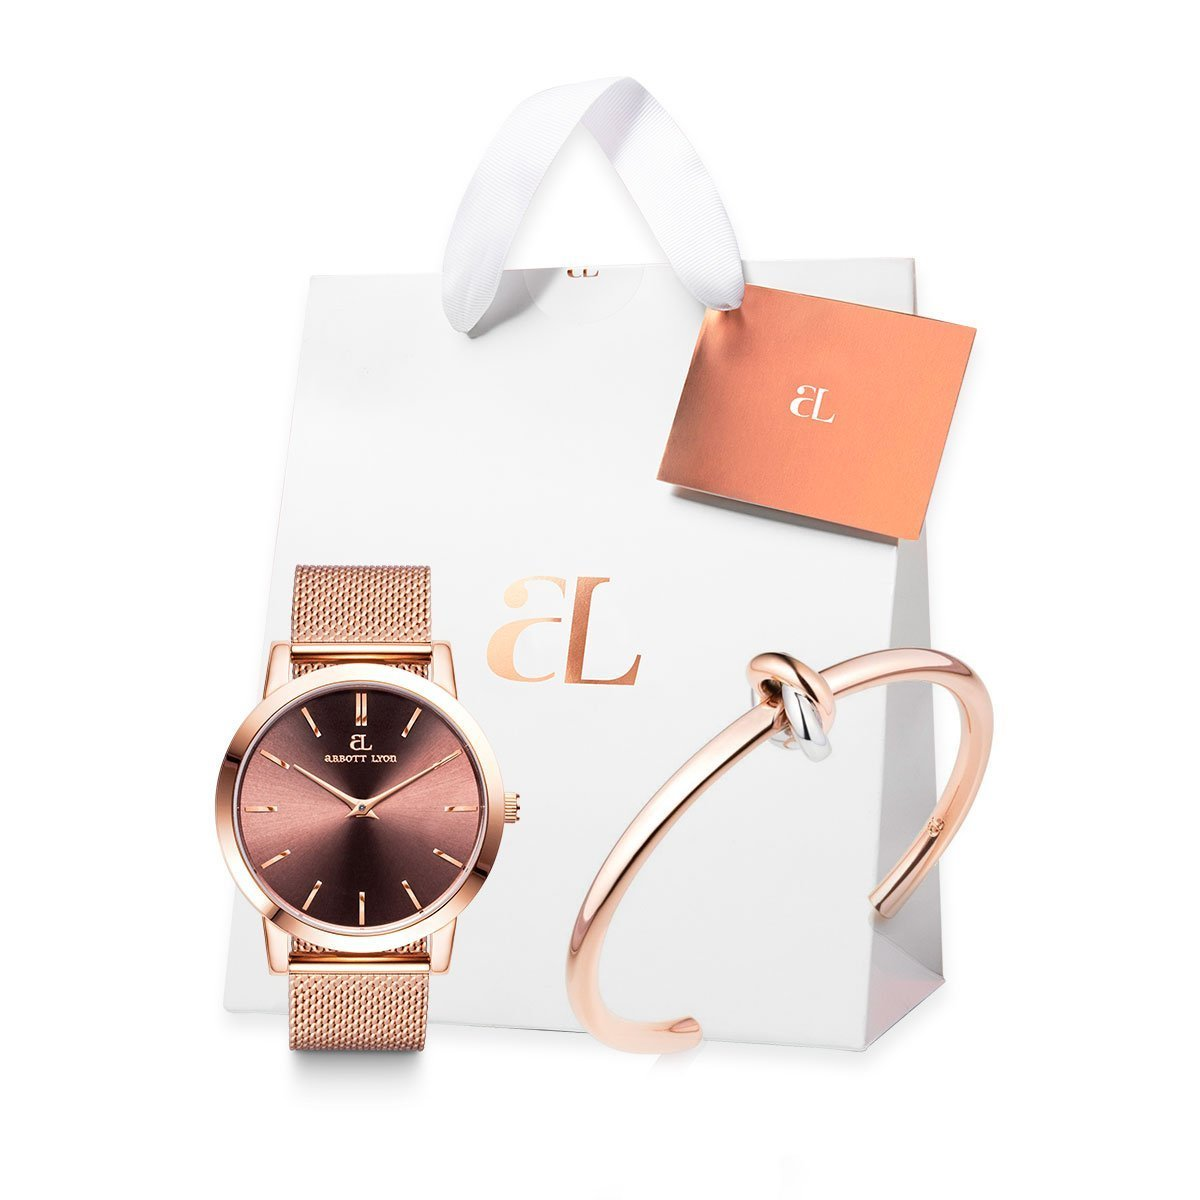 The Rose Gold Chain Luxe 40 knot Gift Set (Rose/Rose)